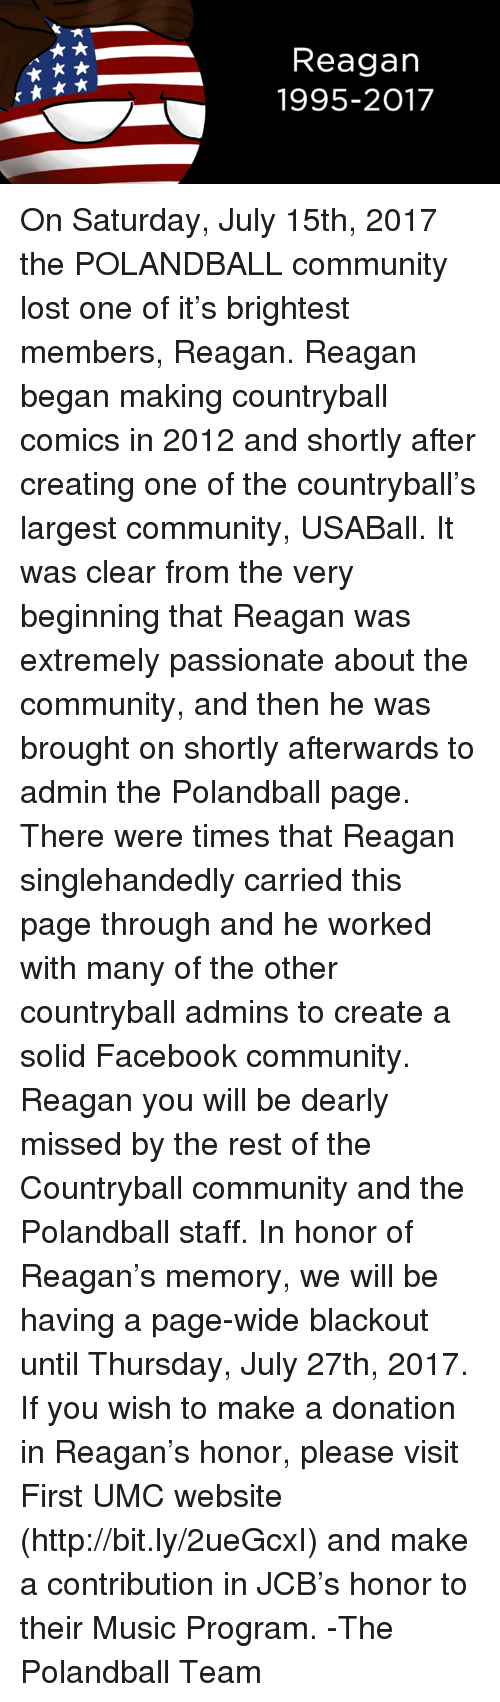 Polandball: Reagan  1995-2017 On Saturday, July 15th, 2017 the POLANDBALL community lost one of it's brightest members, Reagan.   Reagan began making countryball comics in 2012 and shortly after creating one of the countryball's largest community, USABall.  It was clear from the very beginning that Reagan was extremely passionate about the community, and then he was brought on shortly afterwards to admin the Polandball page. There were times that Reagan singlehandedly carried this page through and he worked with many of the other countryball admins to create a solid Facebook community.   Reagan you will be dearly missed by the rest of the Countryball community and the Polandball staff.   In honor of Reagan's memory, we will be having a page-wide blackout until Thursday, July 27th, 2017.  If you wish to make a donation in Reagan's honor, please visit First UMC website (http://bit.ly/2ueGcxI) and make a contribution in JCB's honor to their Music Program.    -The Polandball Team